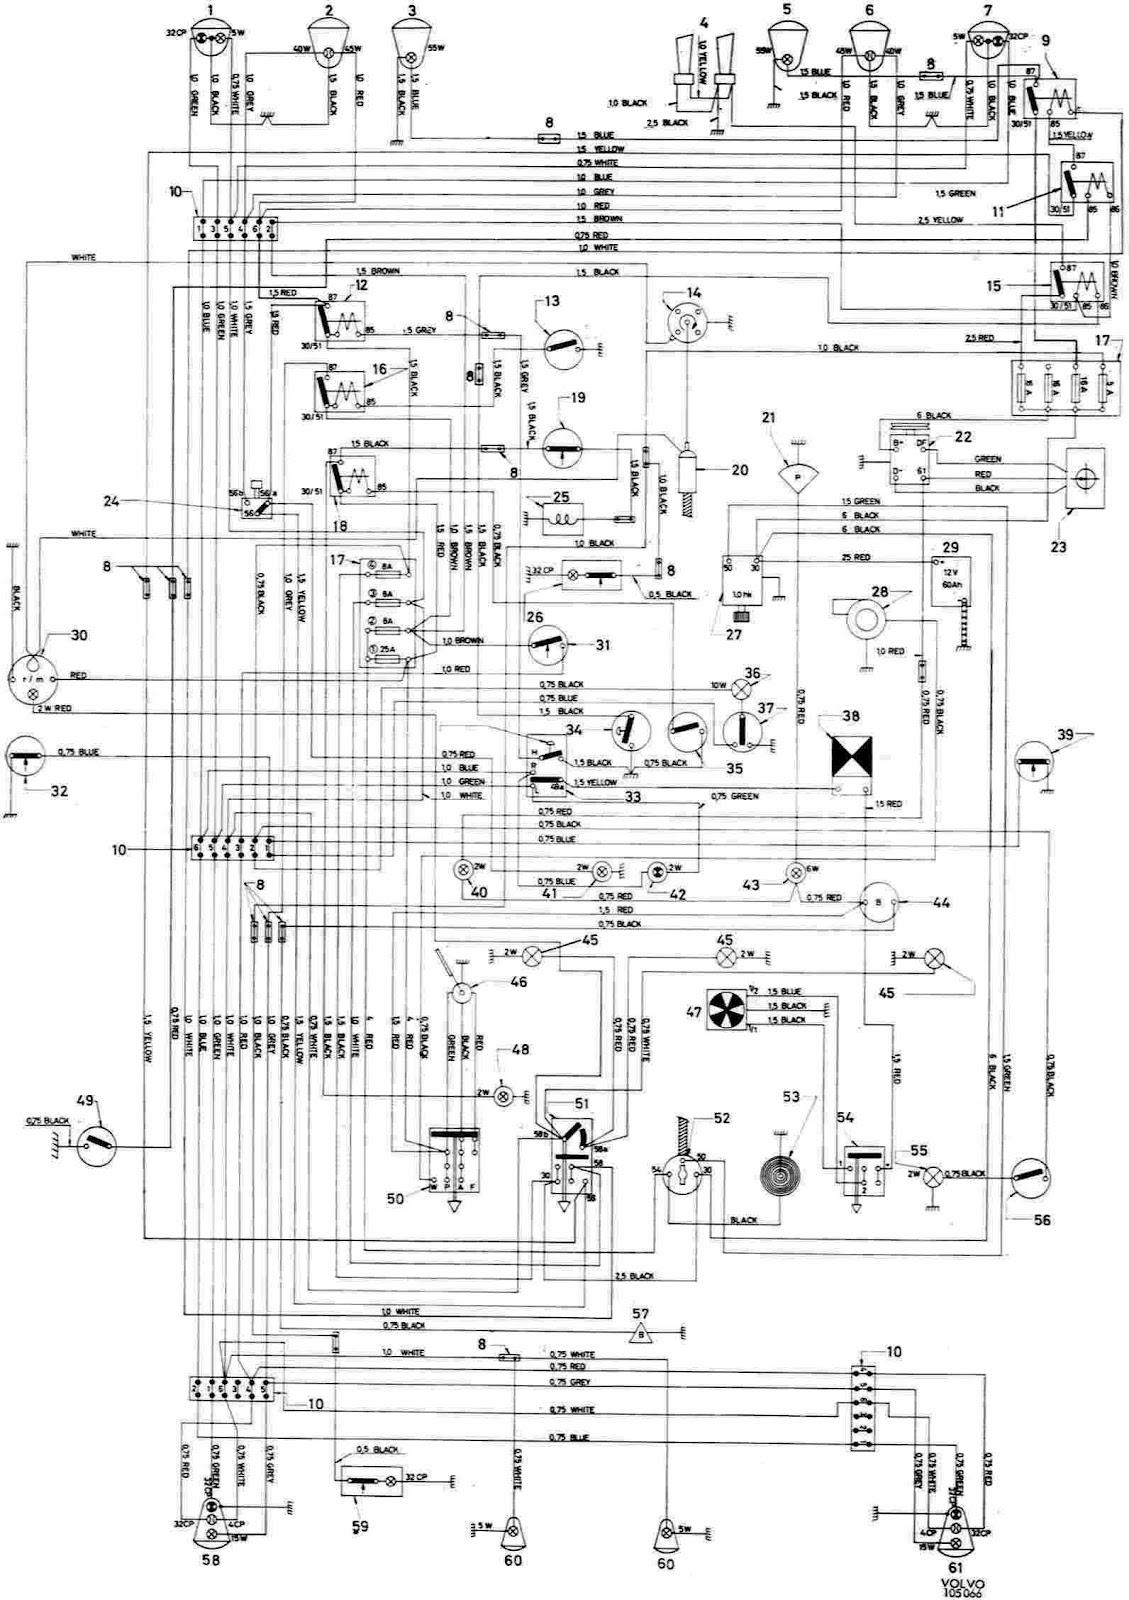 Volvo+123+GT+Complete+Wiring+Diagram 2005 volvo s40 wiring diagram volvo s40 steering diagram \u2022 wiring volvo xc90 stereo wiring diagram at beritabola.co